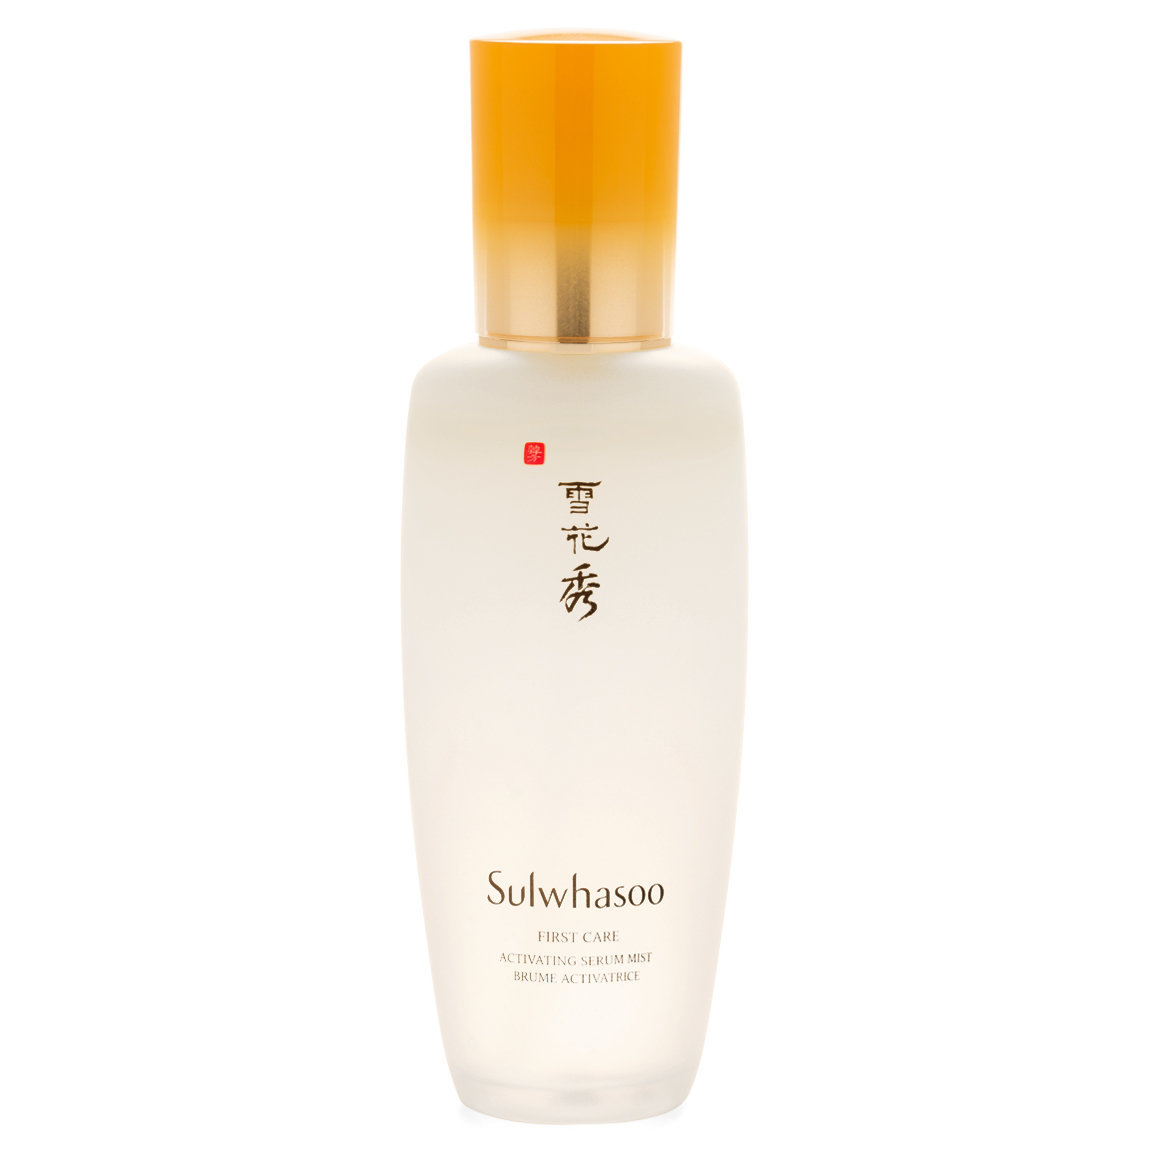 Sulwhasoo First Care Activating Serum Mist product swatch.